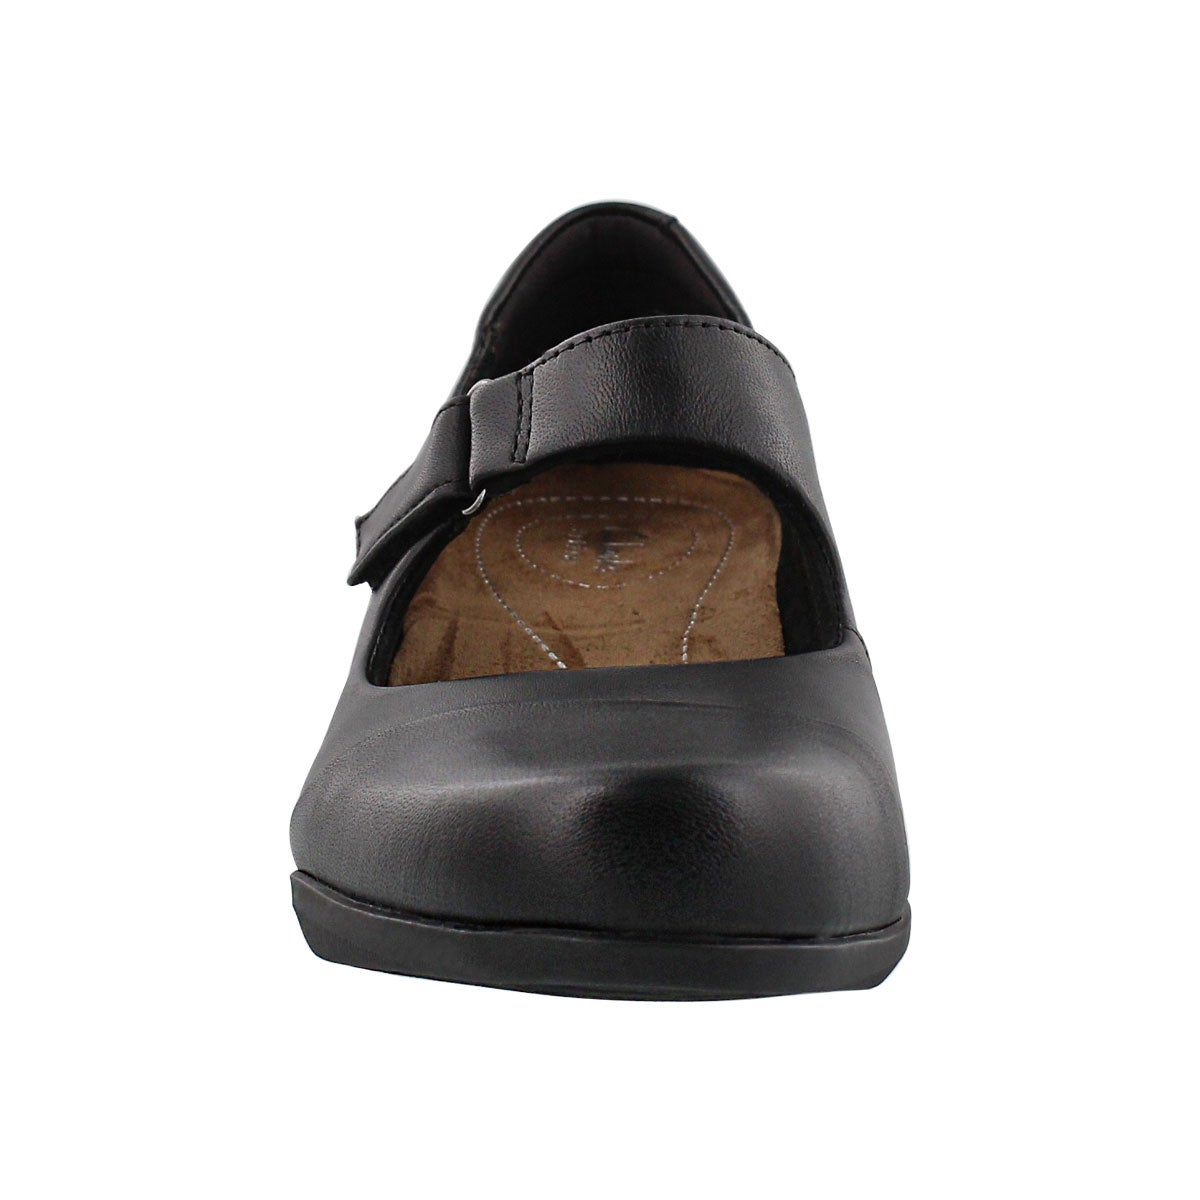 Lds Rosalyn Wren blk maryjane heel-WIDE